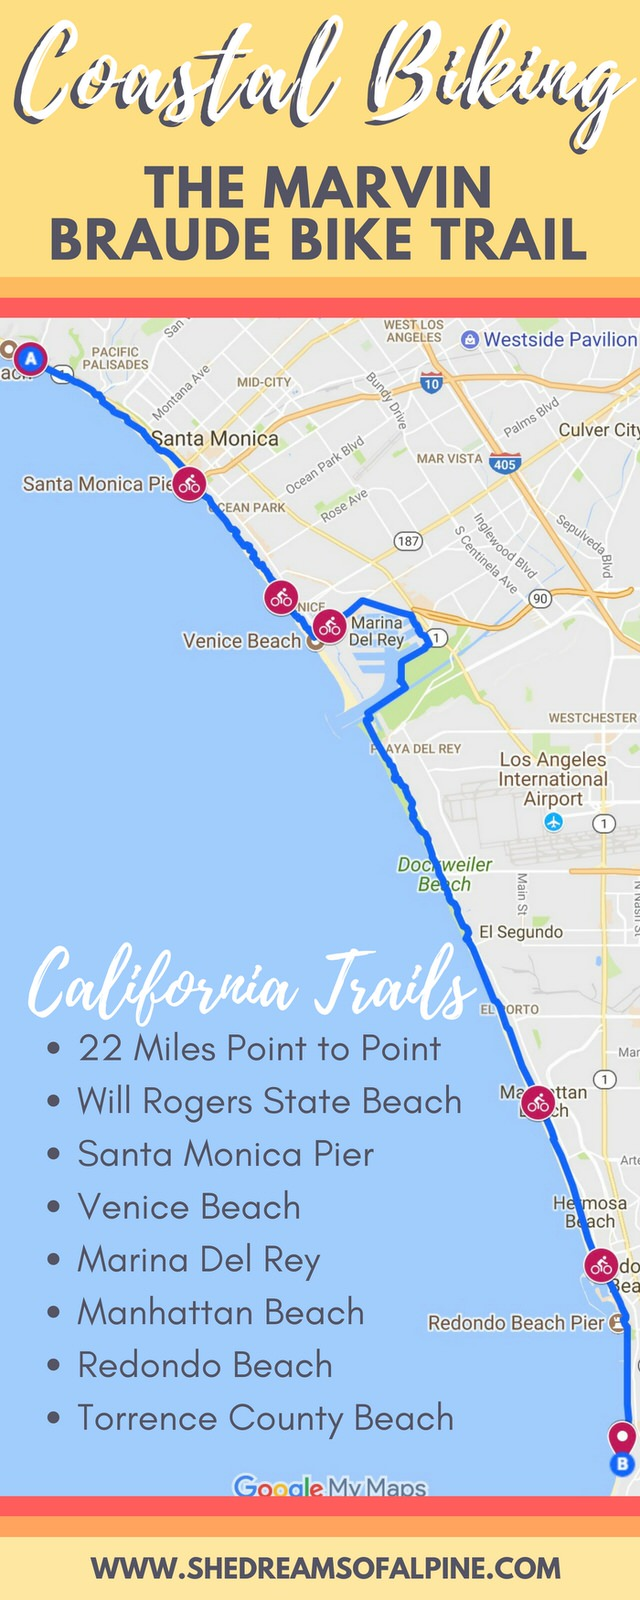 California Coastal Bike Riding - The Marvin Braude Bike Trail